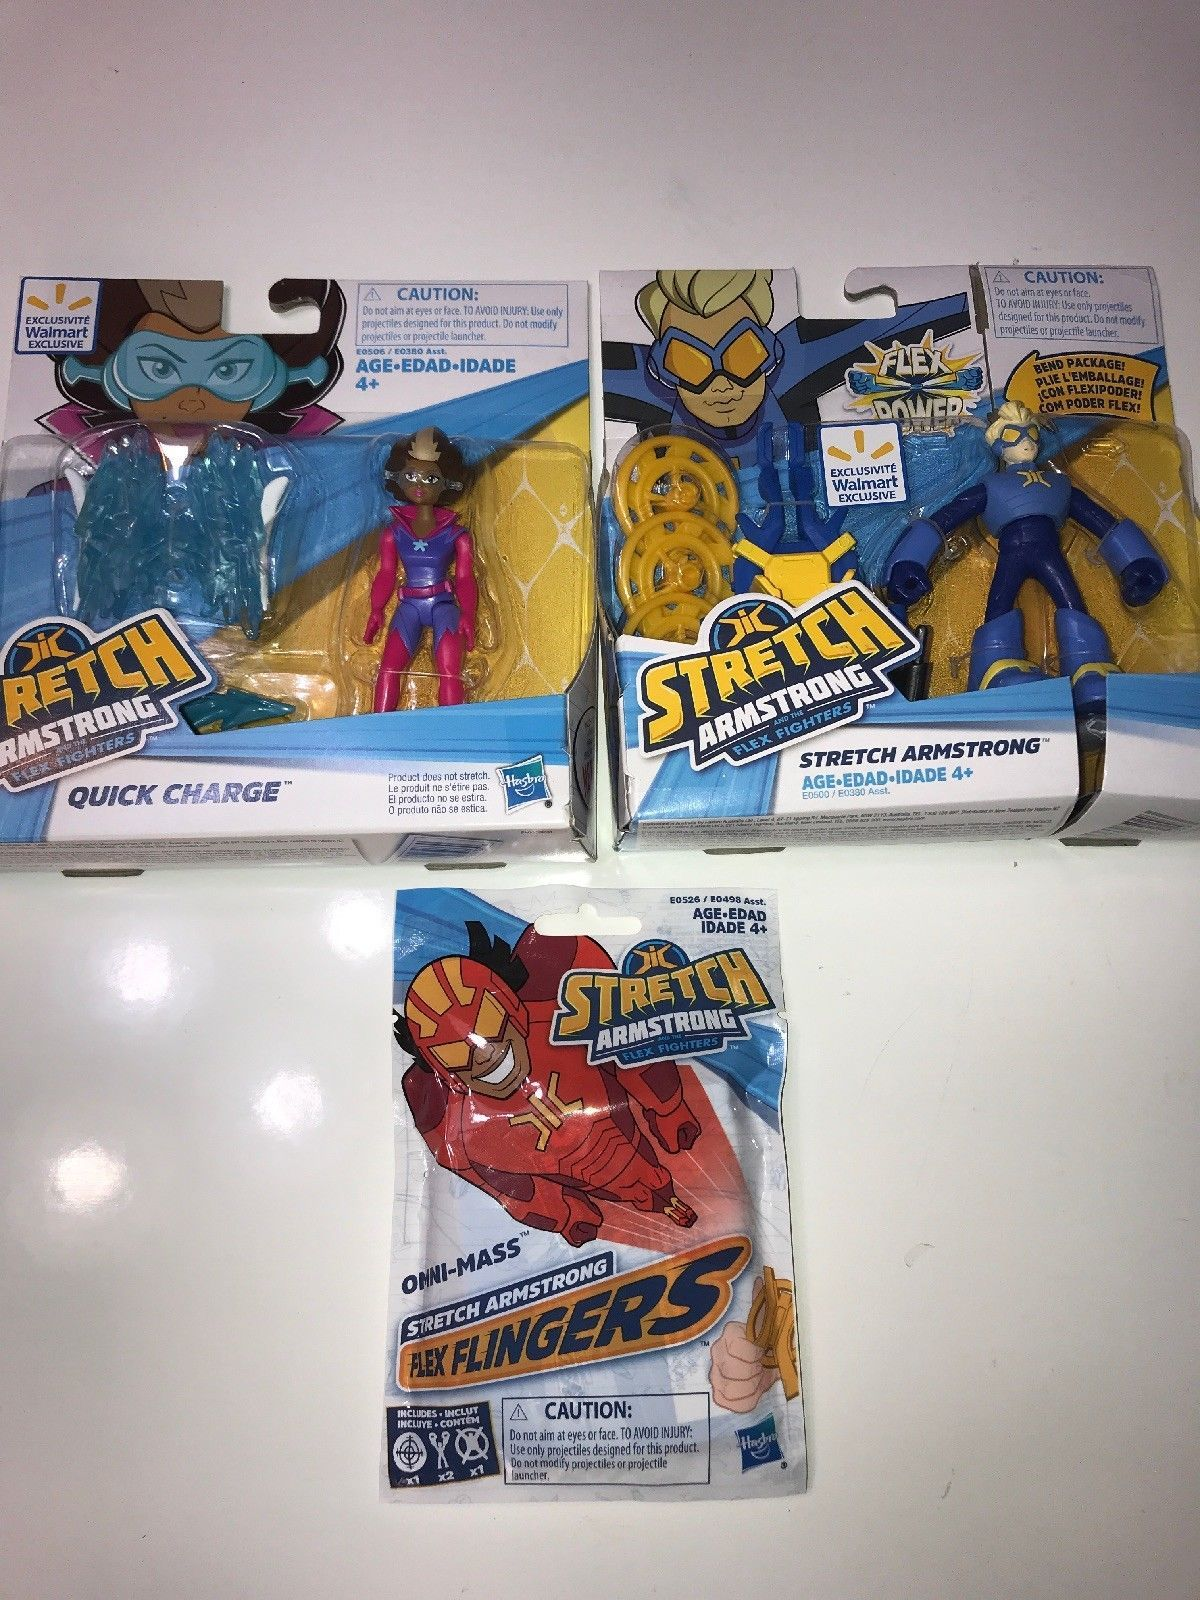 Stretch Armstrong Action Figure Toy Flex Fighters Kids Boys TV Play Game Doll